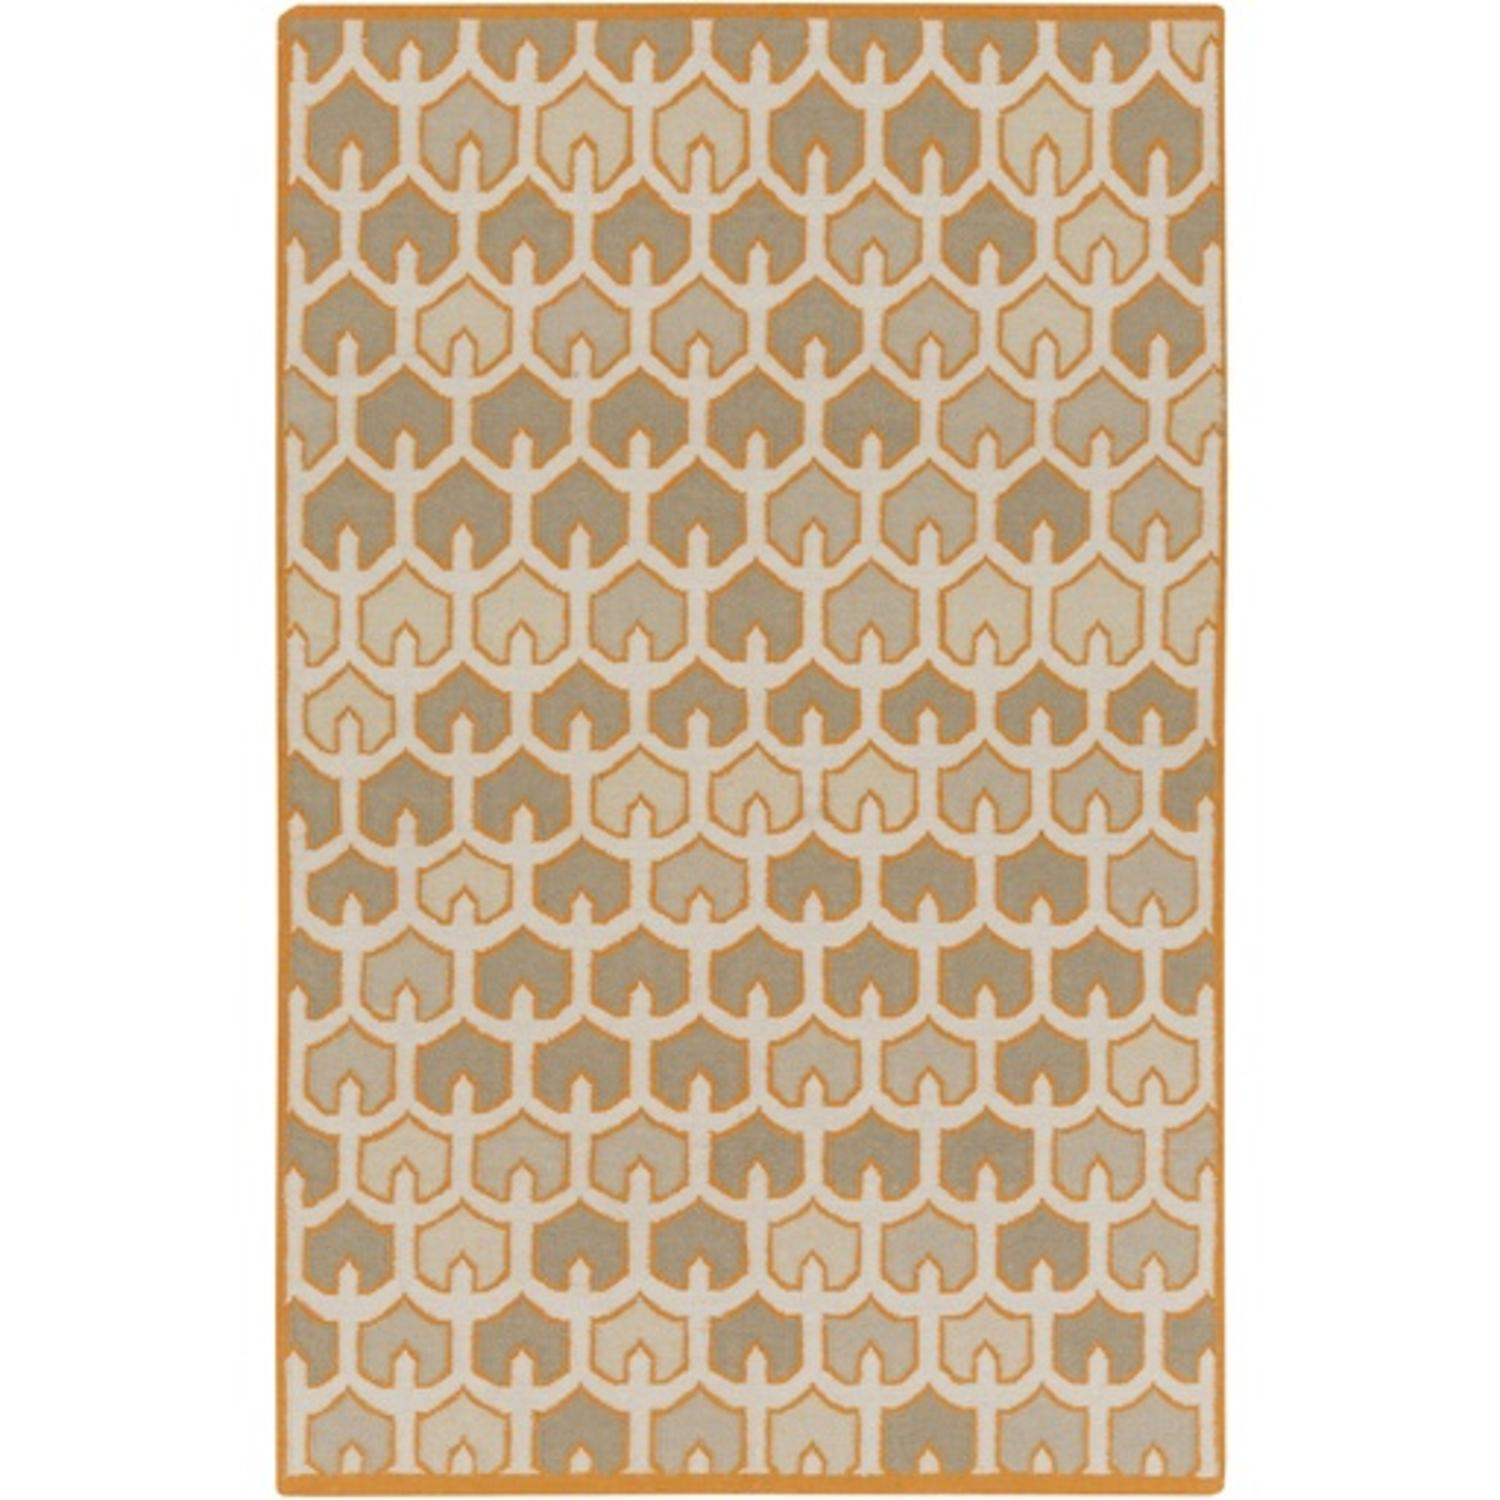 2' x 3' Bohemian Frame Burnt Orange, Stone Gray and Taupe Hand Woven Shed-Free Wool Area Throw Rug